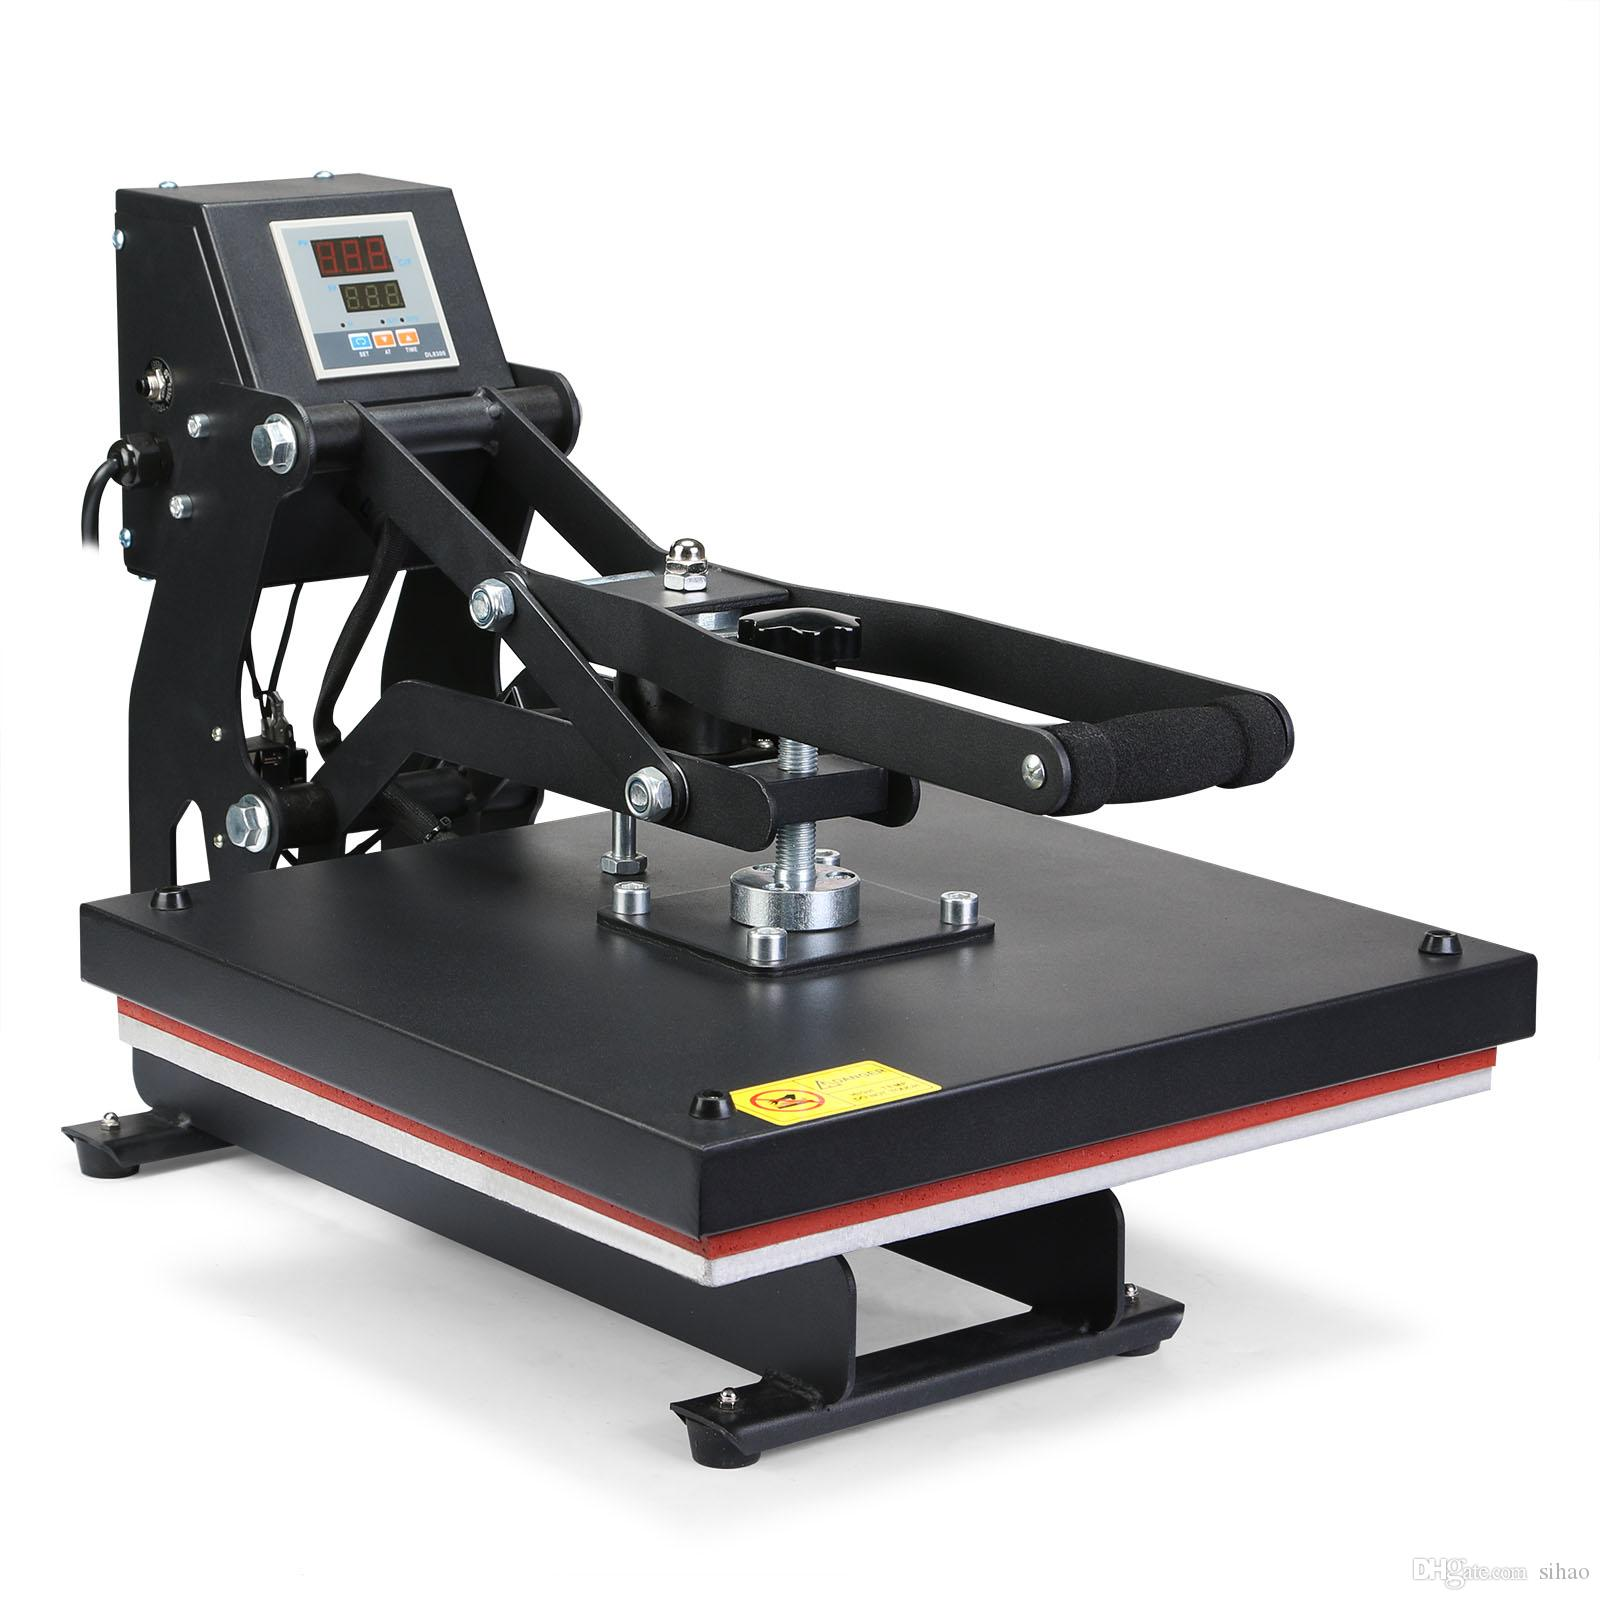 0ae1d8230 2019 15inch Heat Transfer T Shirt Heat Press Machine ,Heat Transfer Machine  For T Shirts, Pants Cloth From Sihao, $170.86 | DHgate.Com